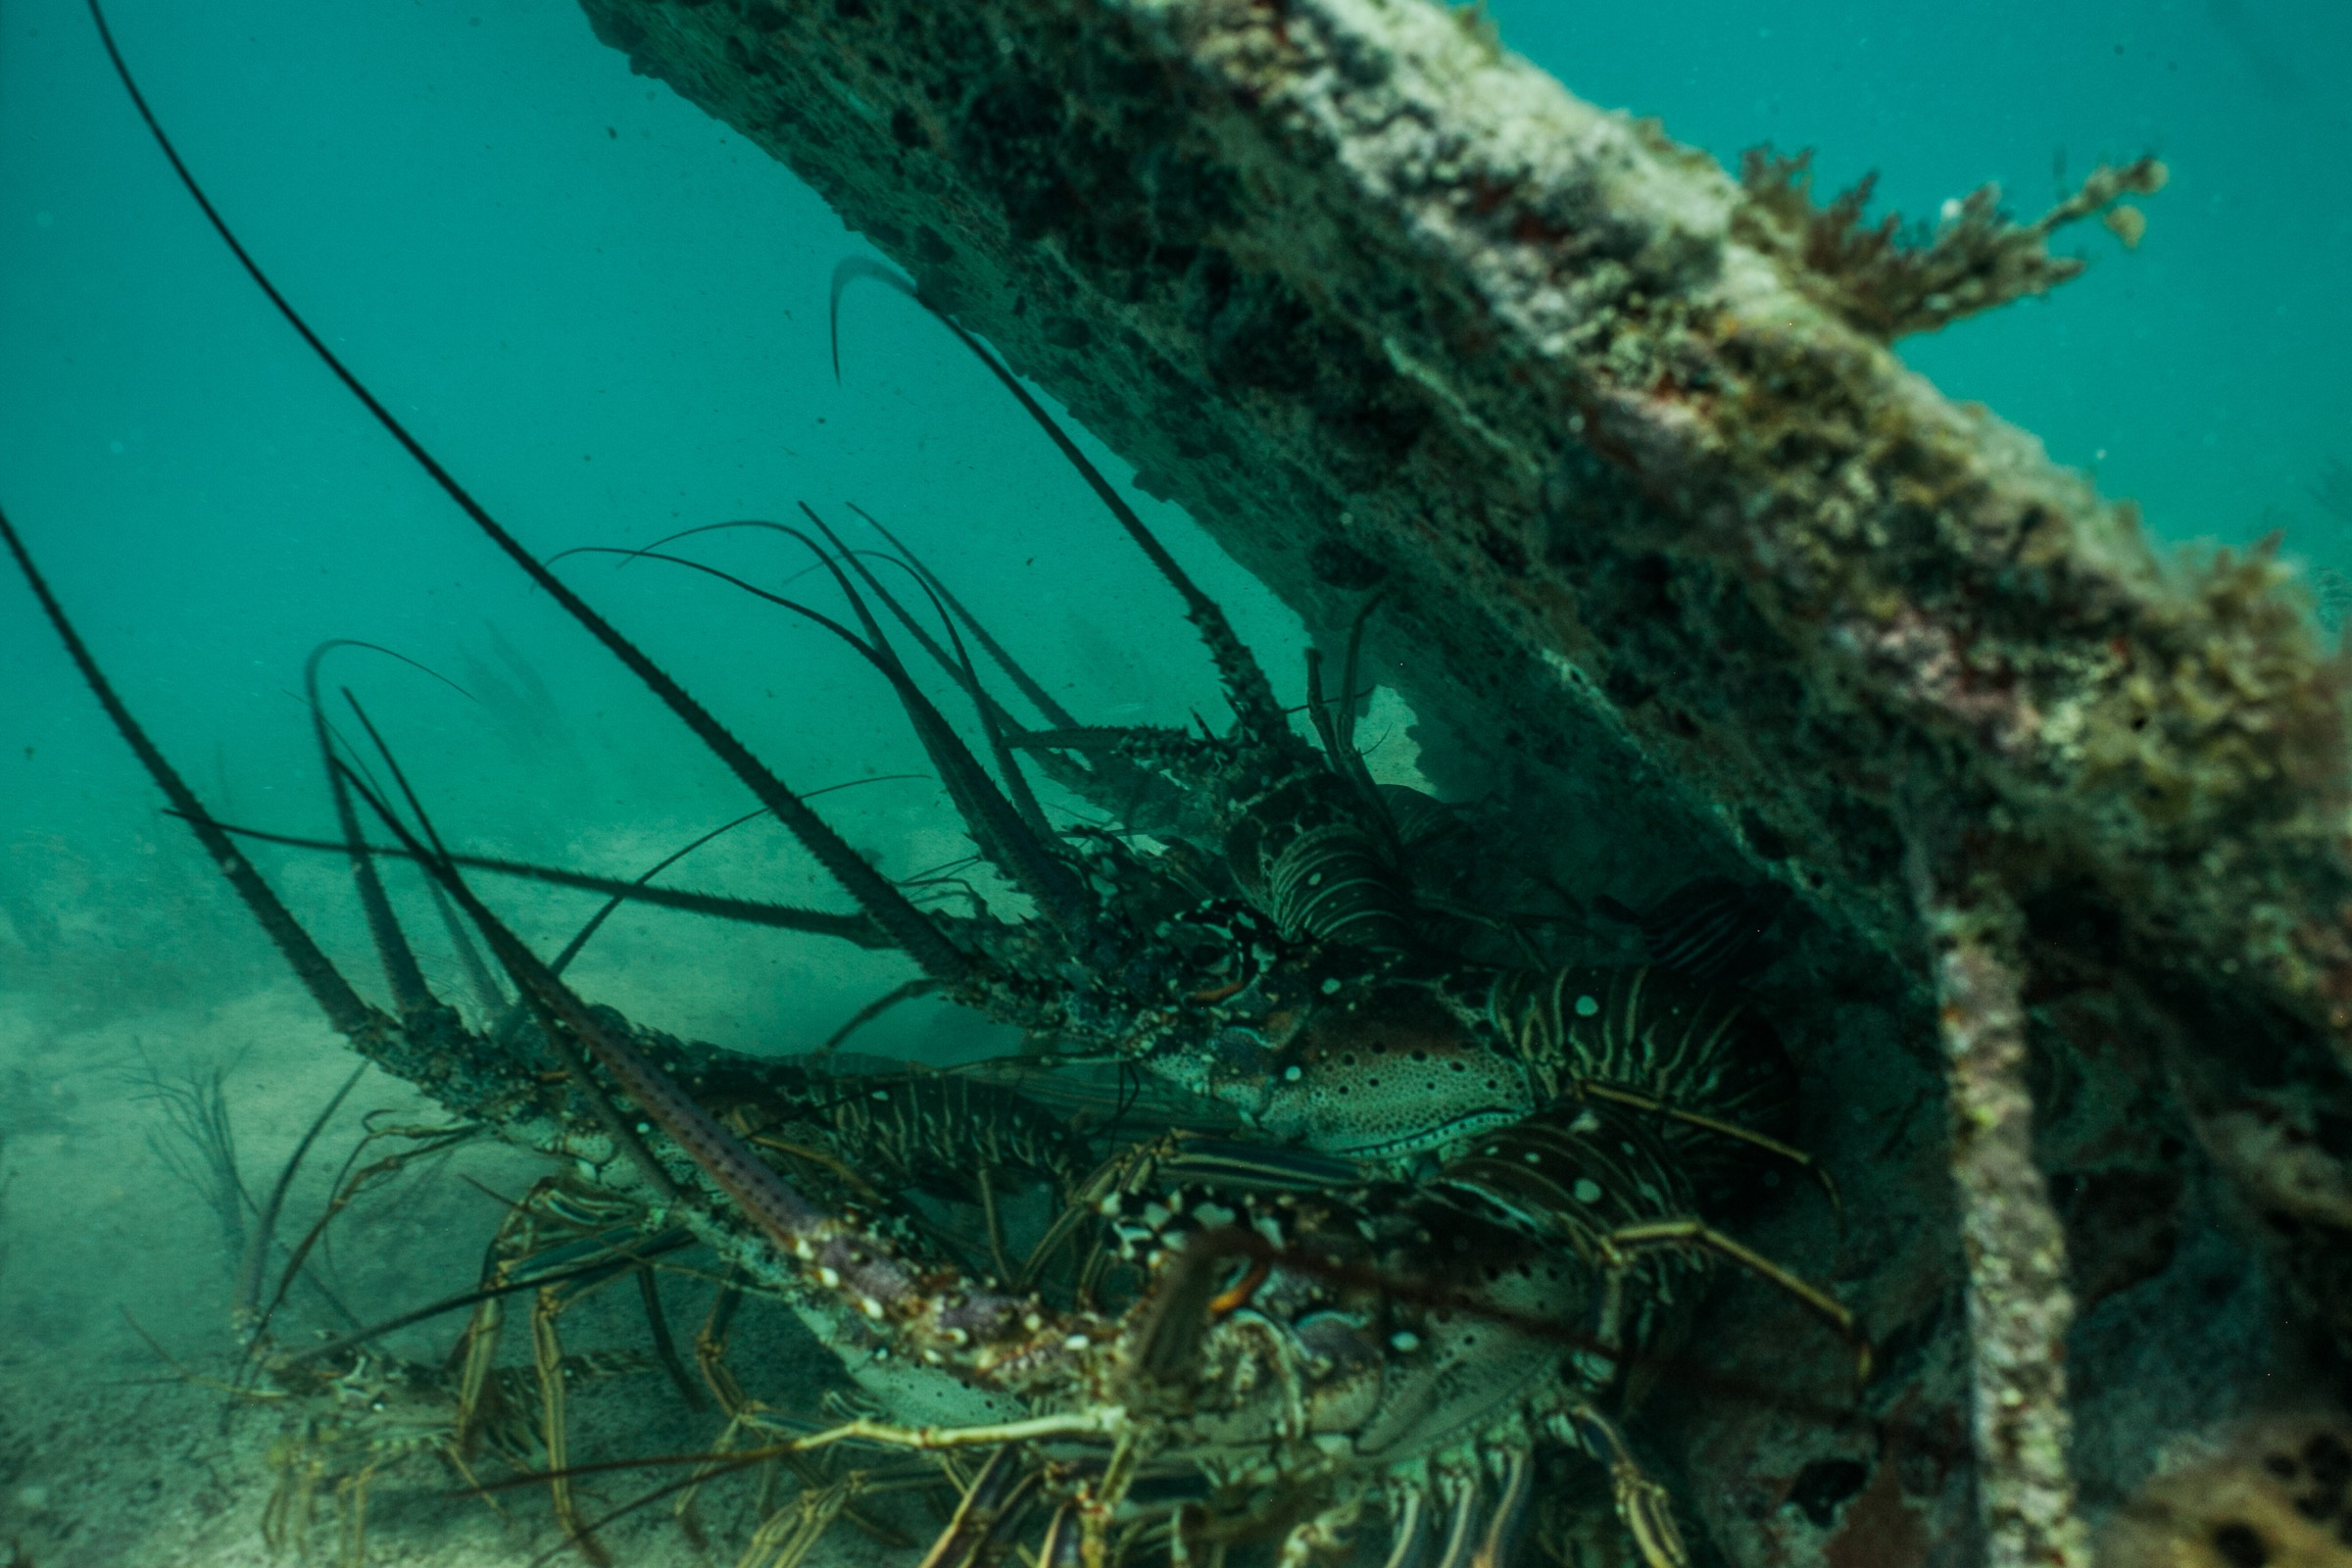 Caribbean spiny lobsters huddle under a casita off Punta Allen, Mexico. Photograph by Dominic Bracco II